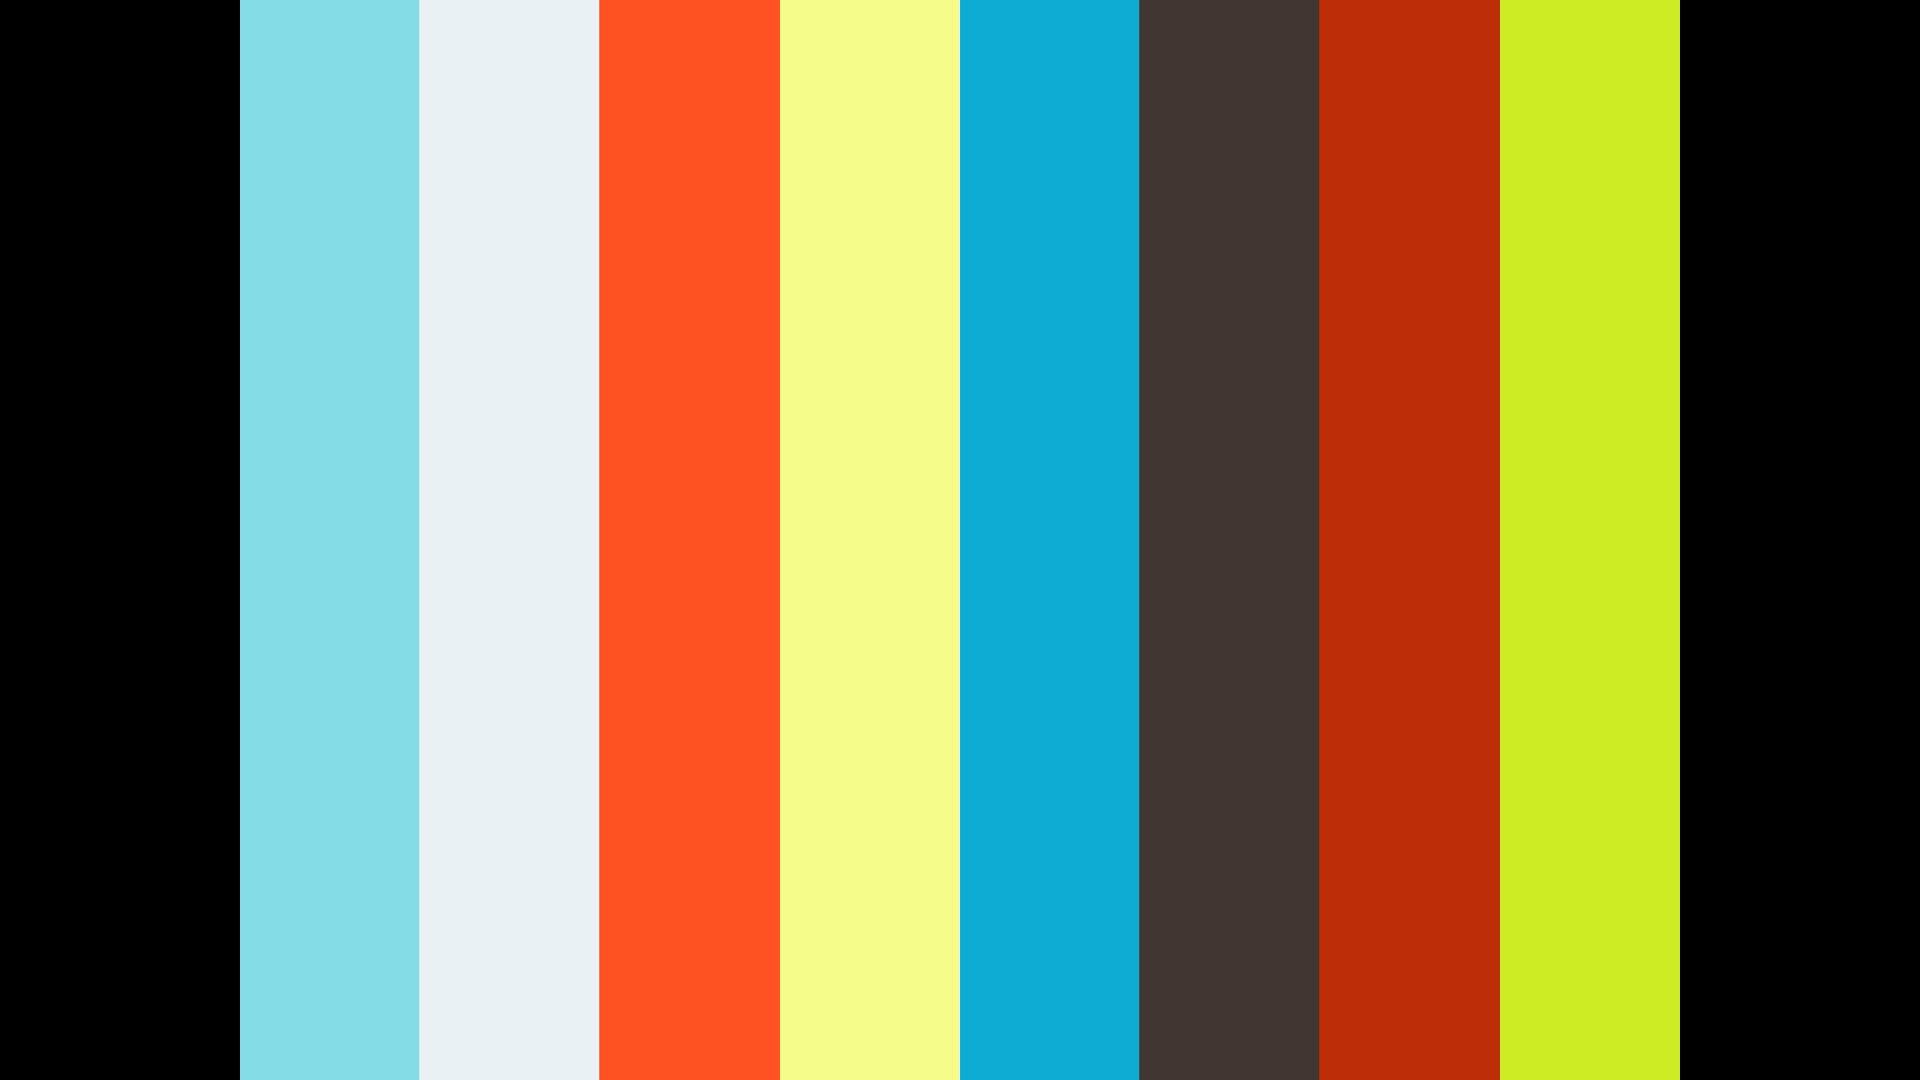 IT Cloud at ChannelNext Central 2019 #2